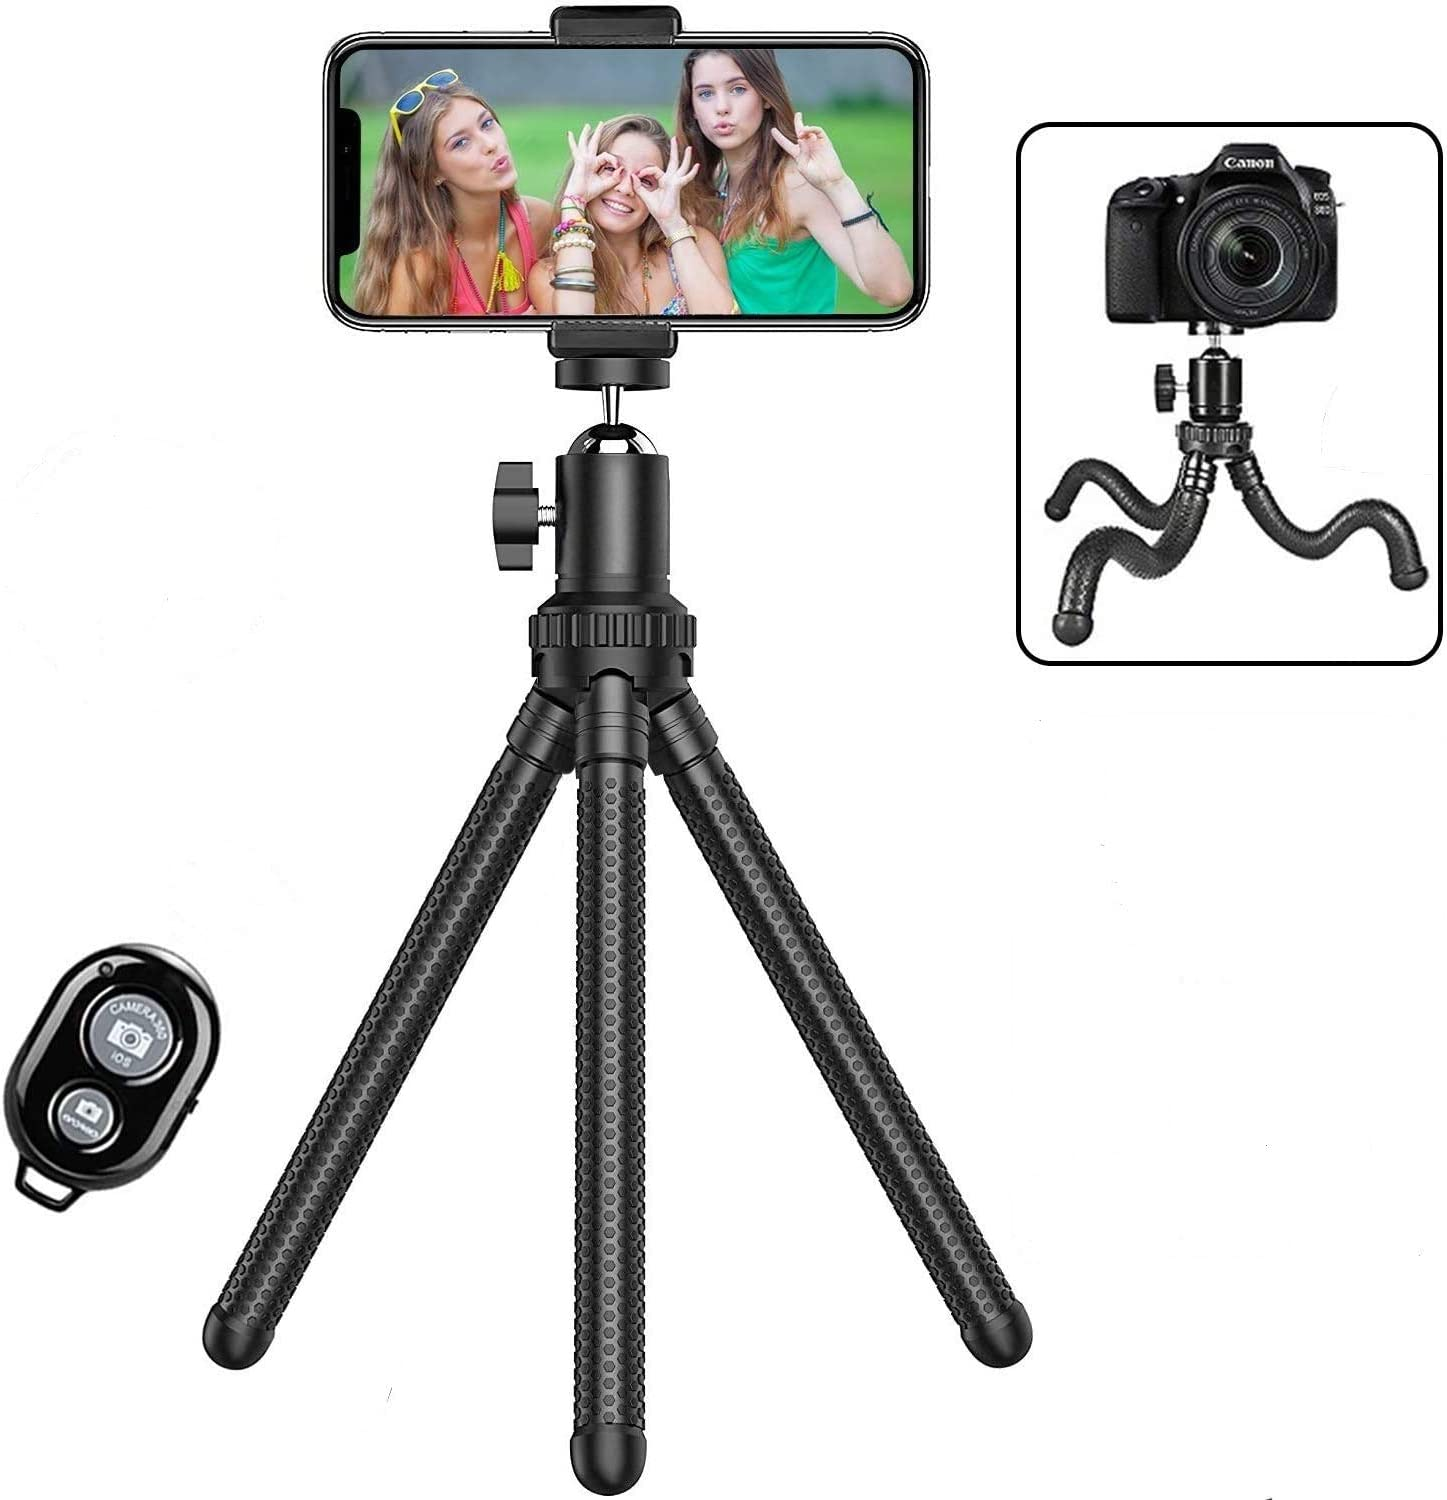 Phone Tripod,Shengsite Portable and Extendable Camera Tripod Stand with Wireless Remote 360°Rotating Adjustable Flexible Cell Phone Tripod Compatible with iPhone, Android Phone, Camera, Sports Camera: Camera & Photo